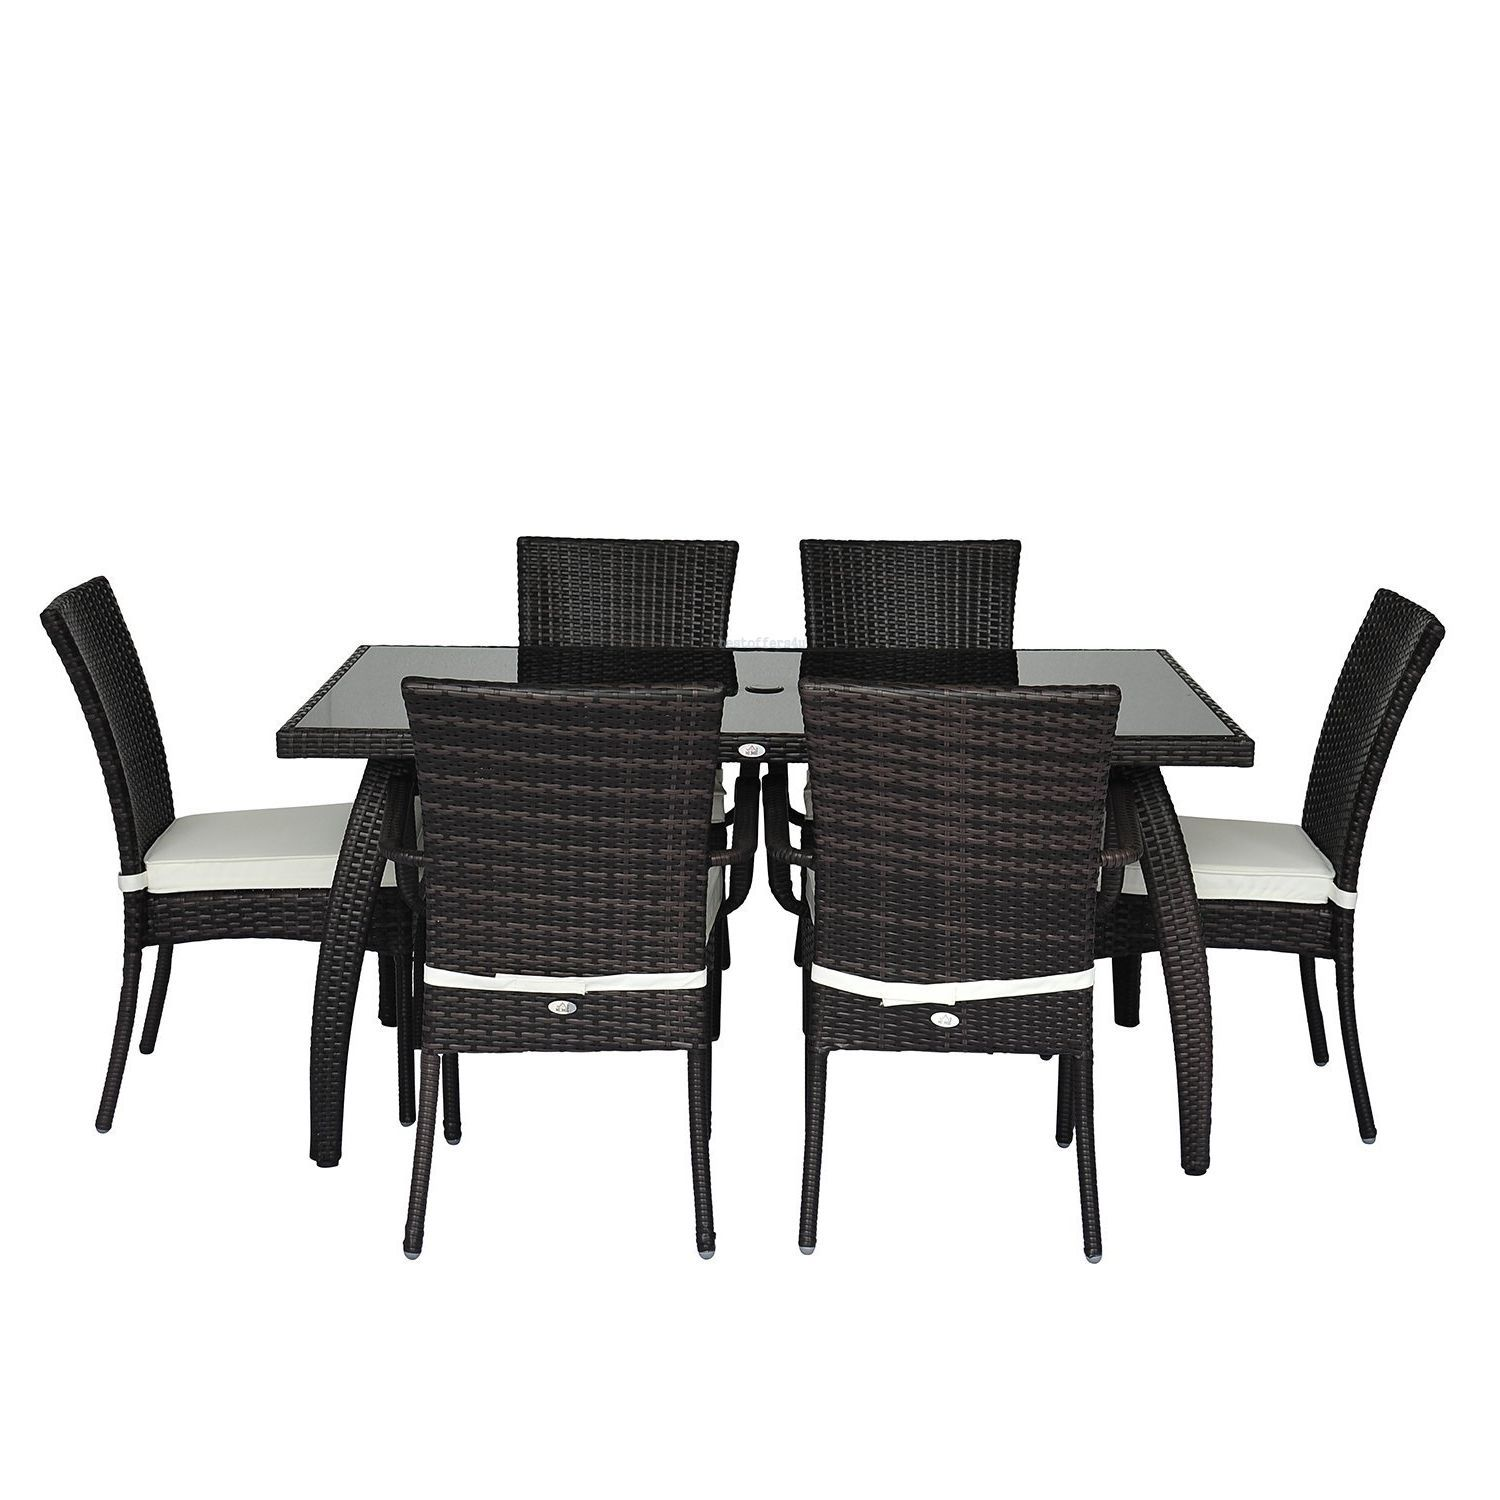 Rattan Garden Dining Set 7pcs Luxury Patio Furniture Rectangular Table 6 Chairs image 3